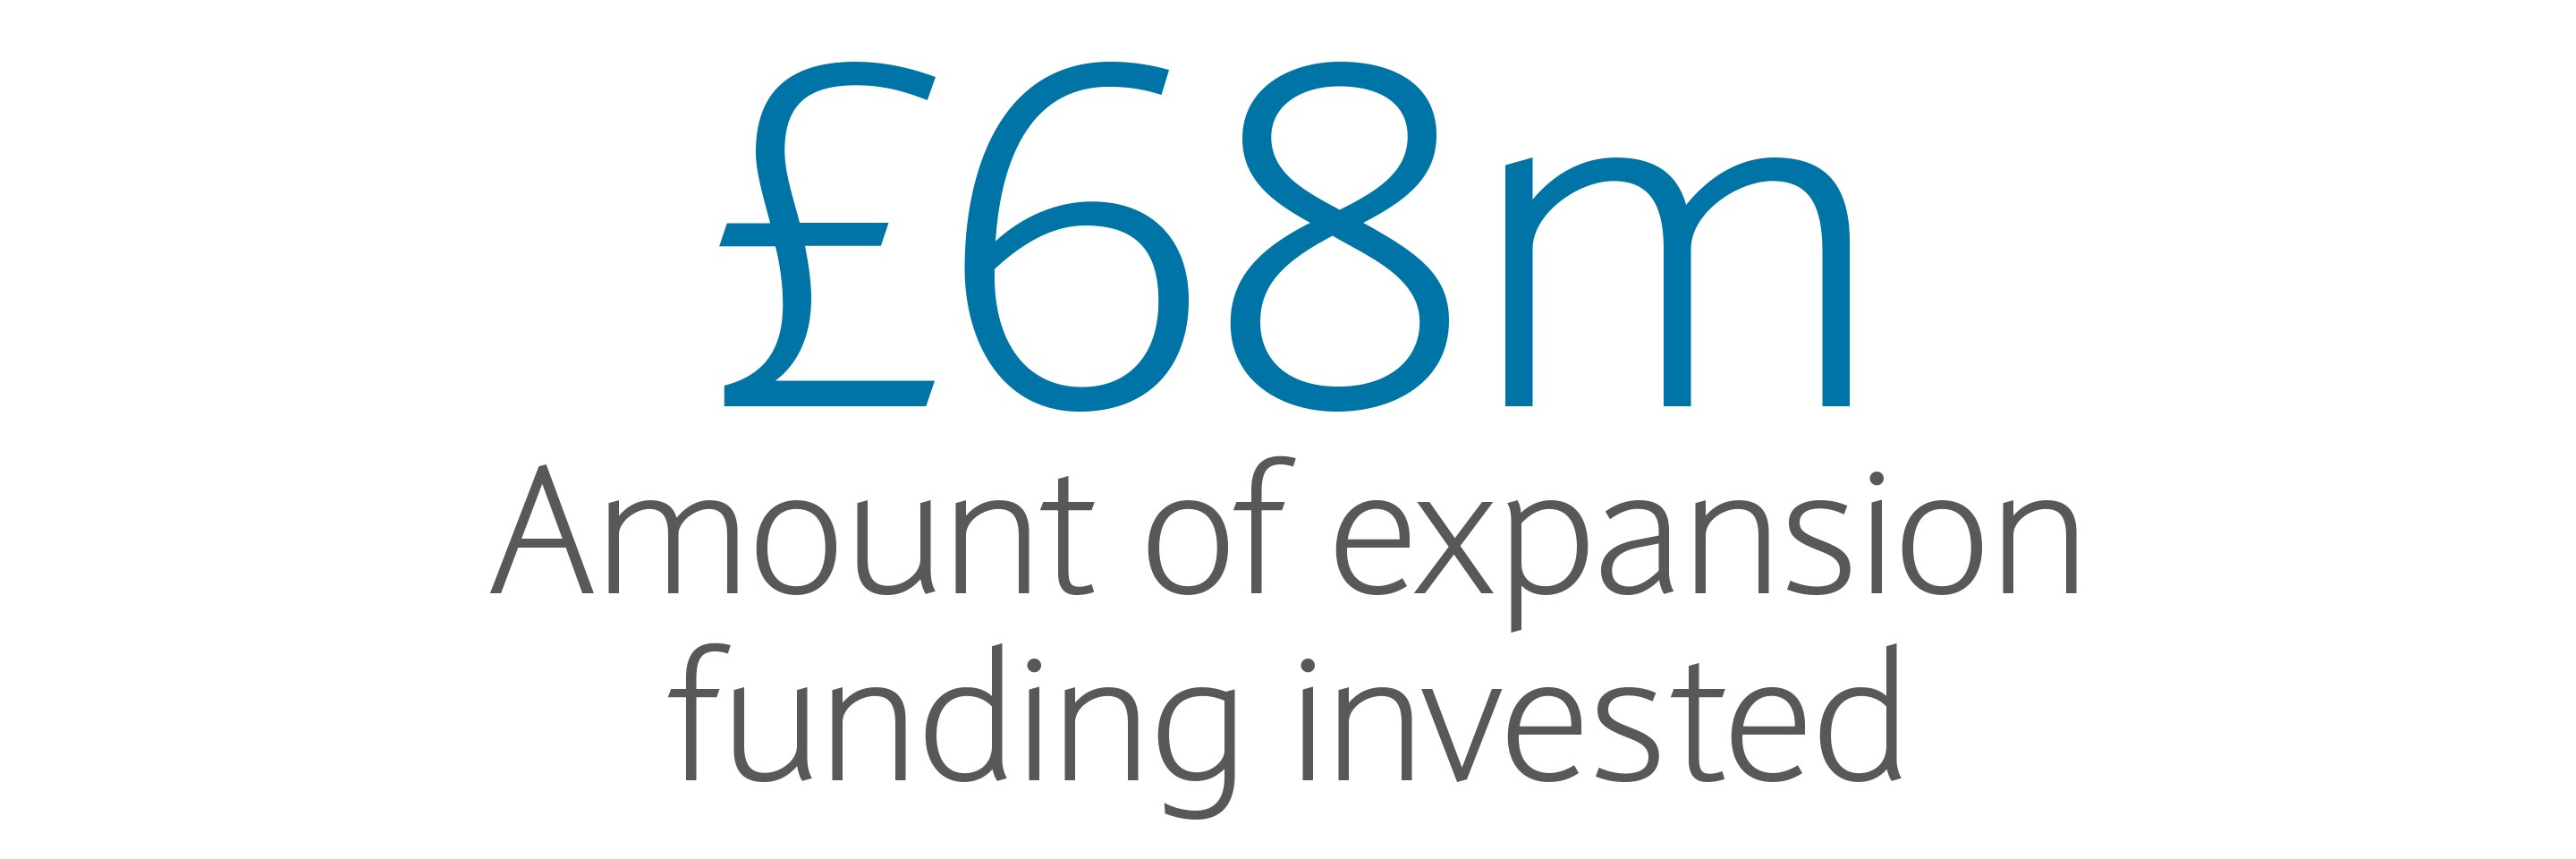 £68m: Amount of expansion funding invested